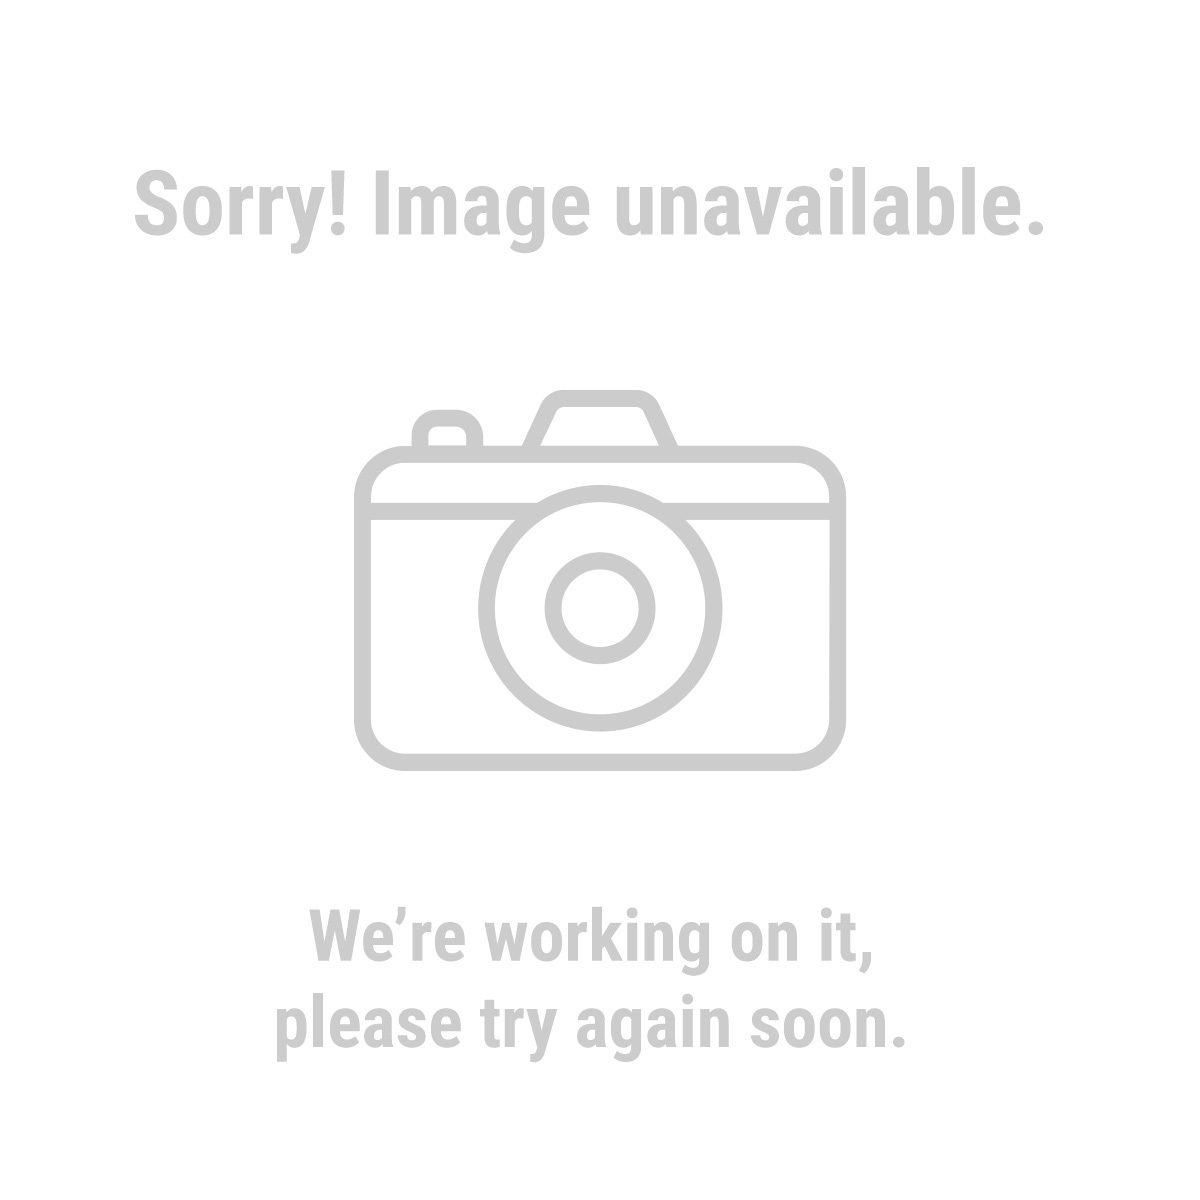 HFT 32907 Electrical Receptacle Tester with GFCI Diagnosis